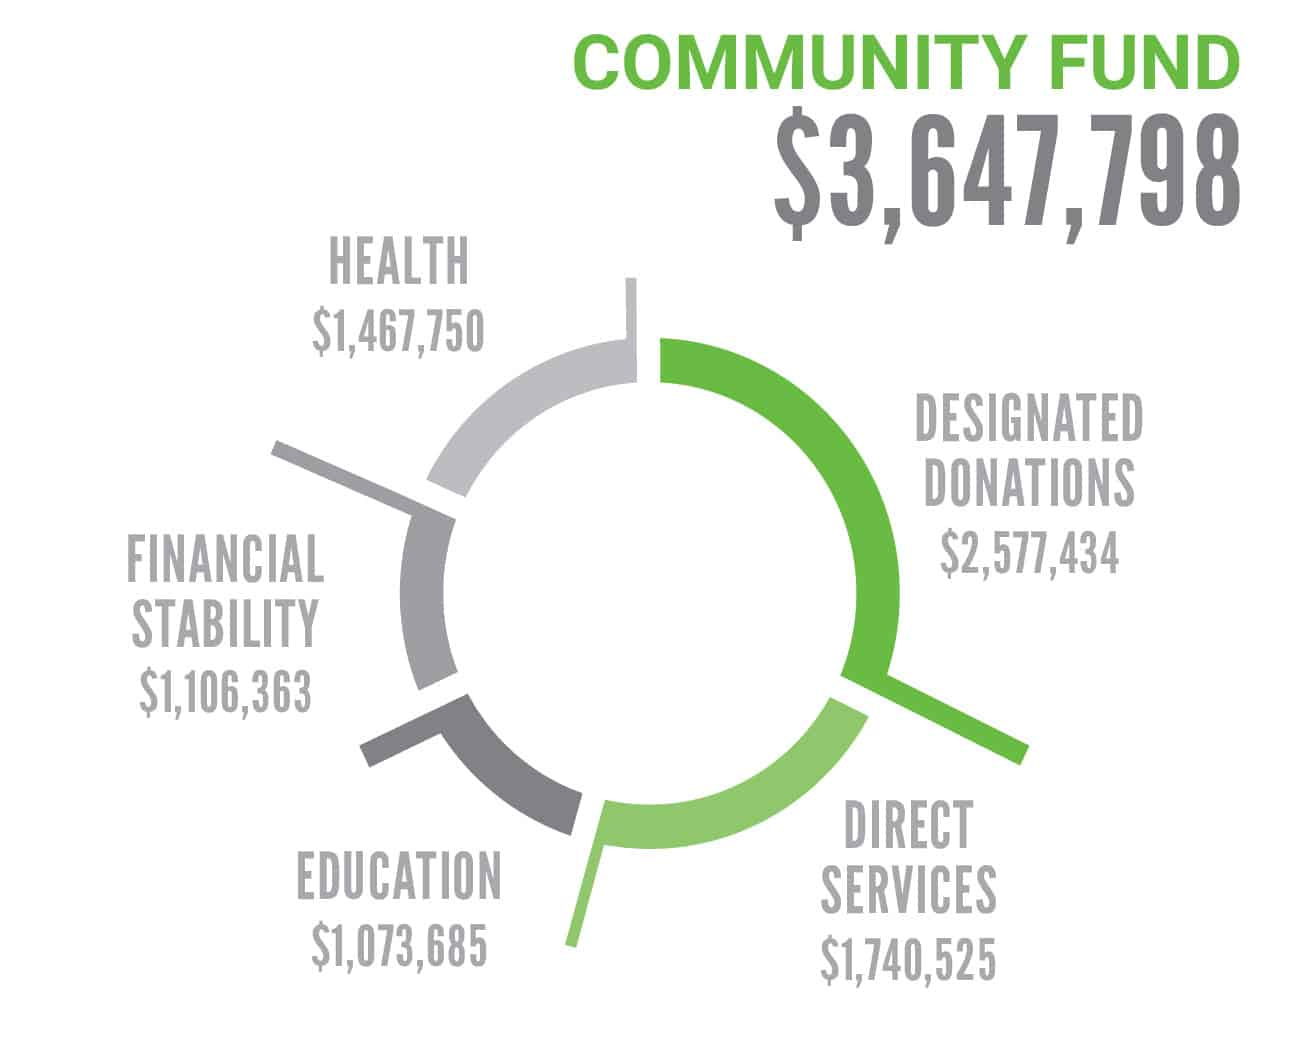 Financial. Community Fund C2